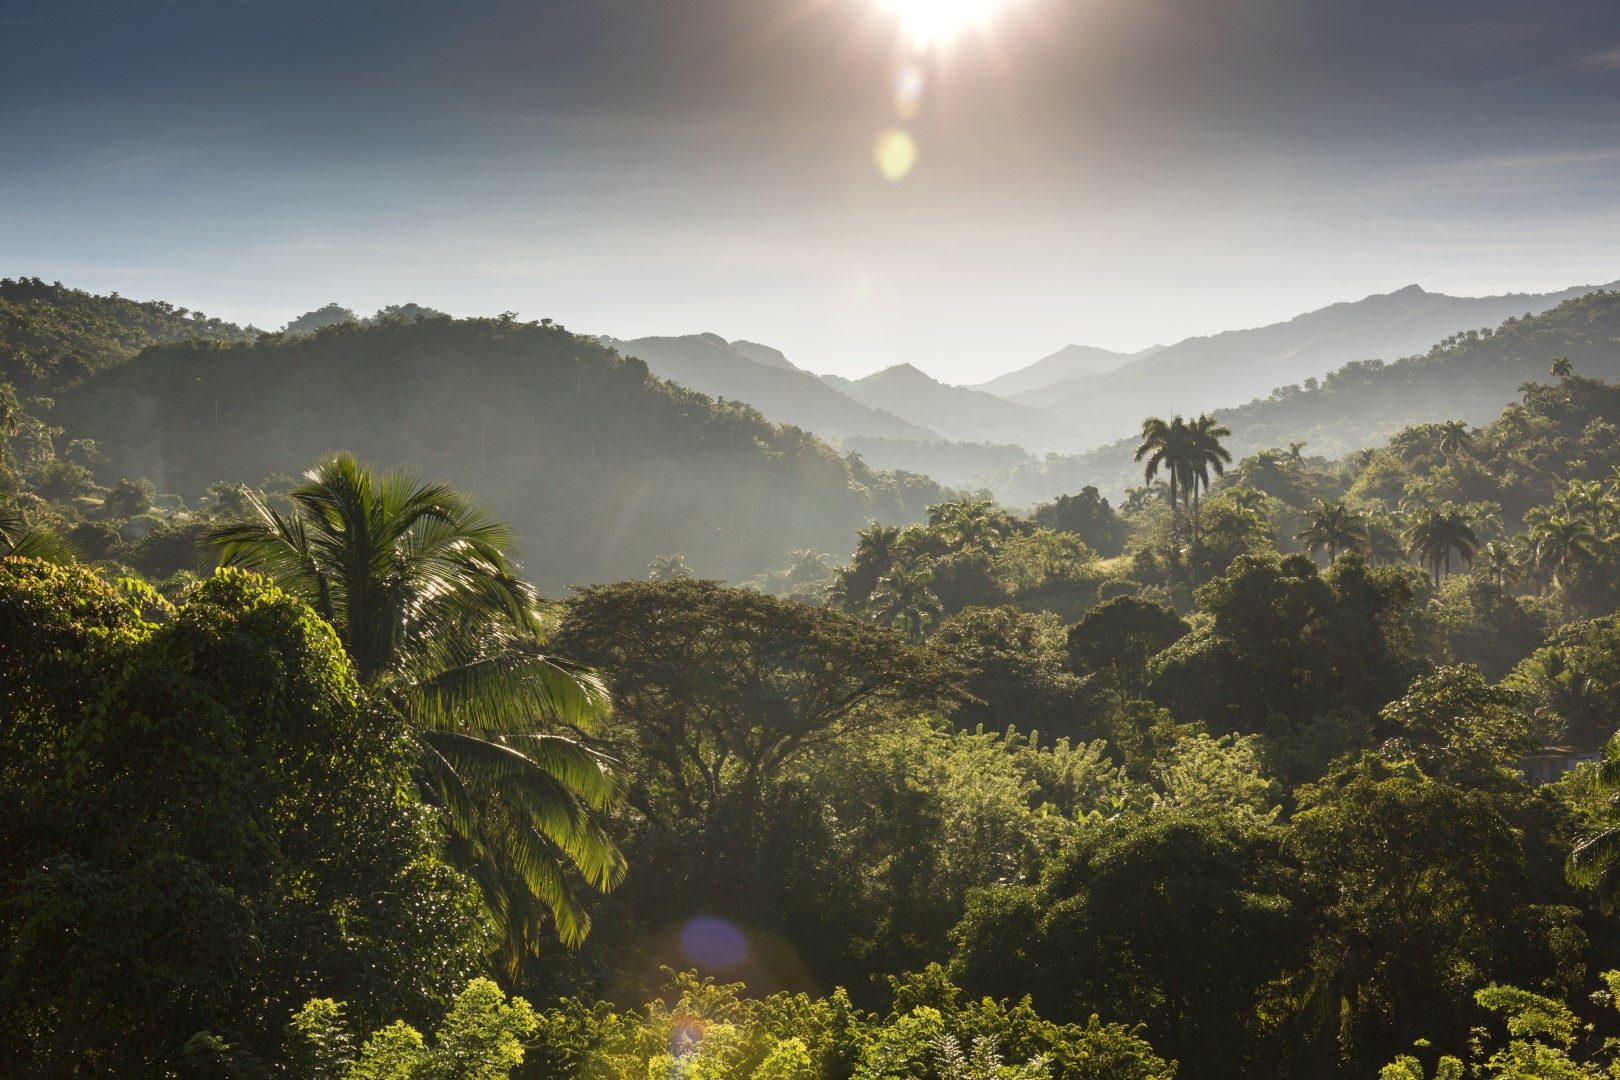 Panoramic view over the Sierra Maestra in Cuba